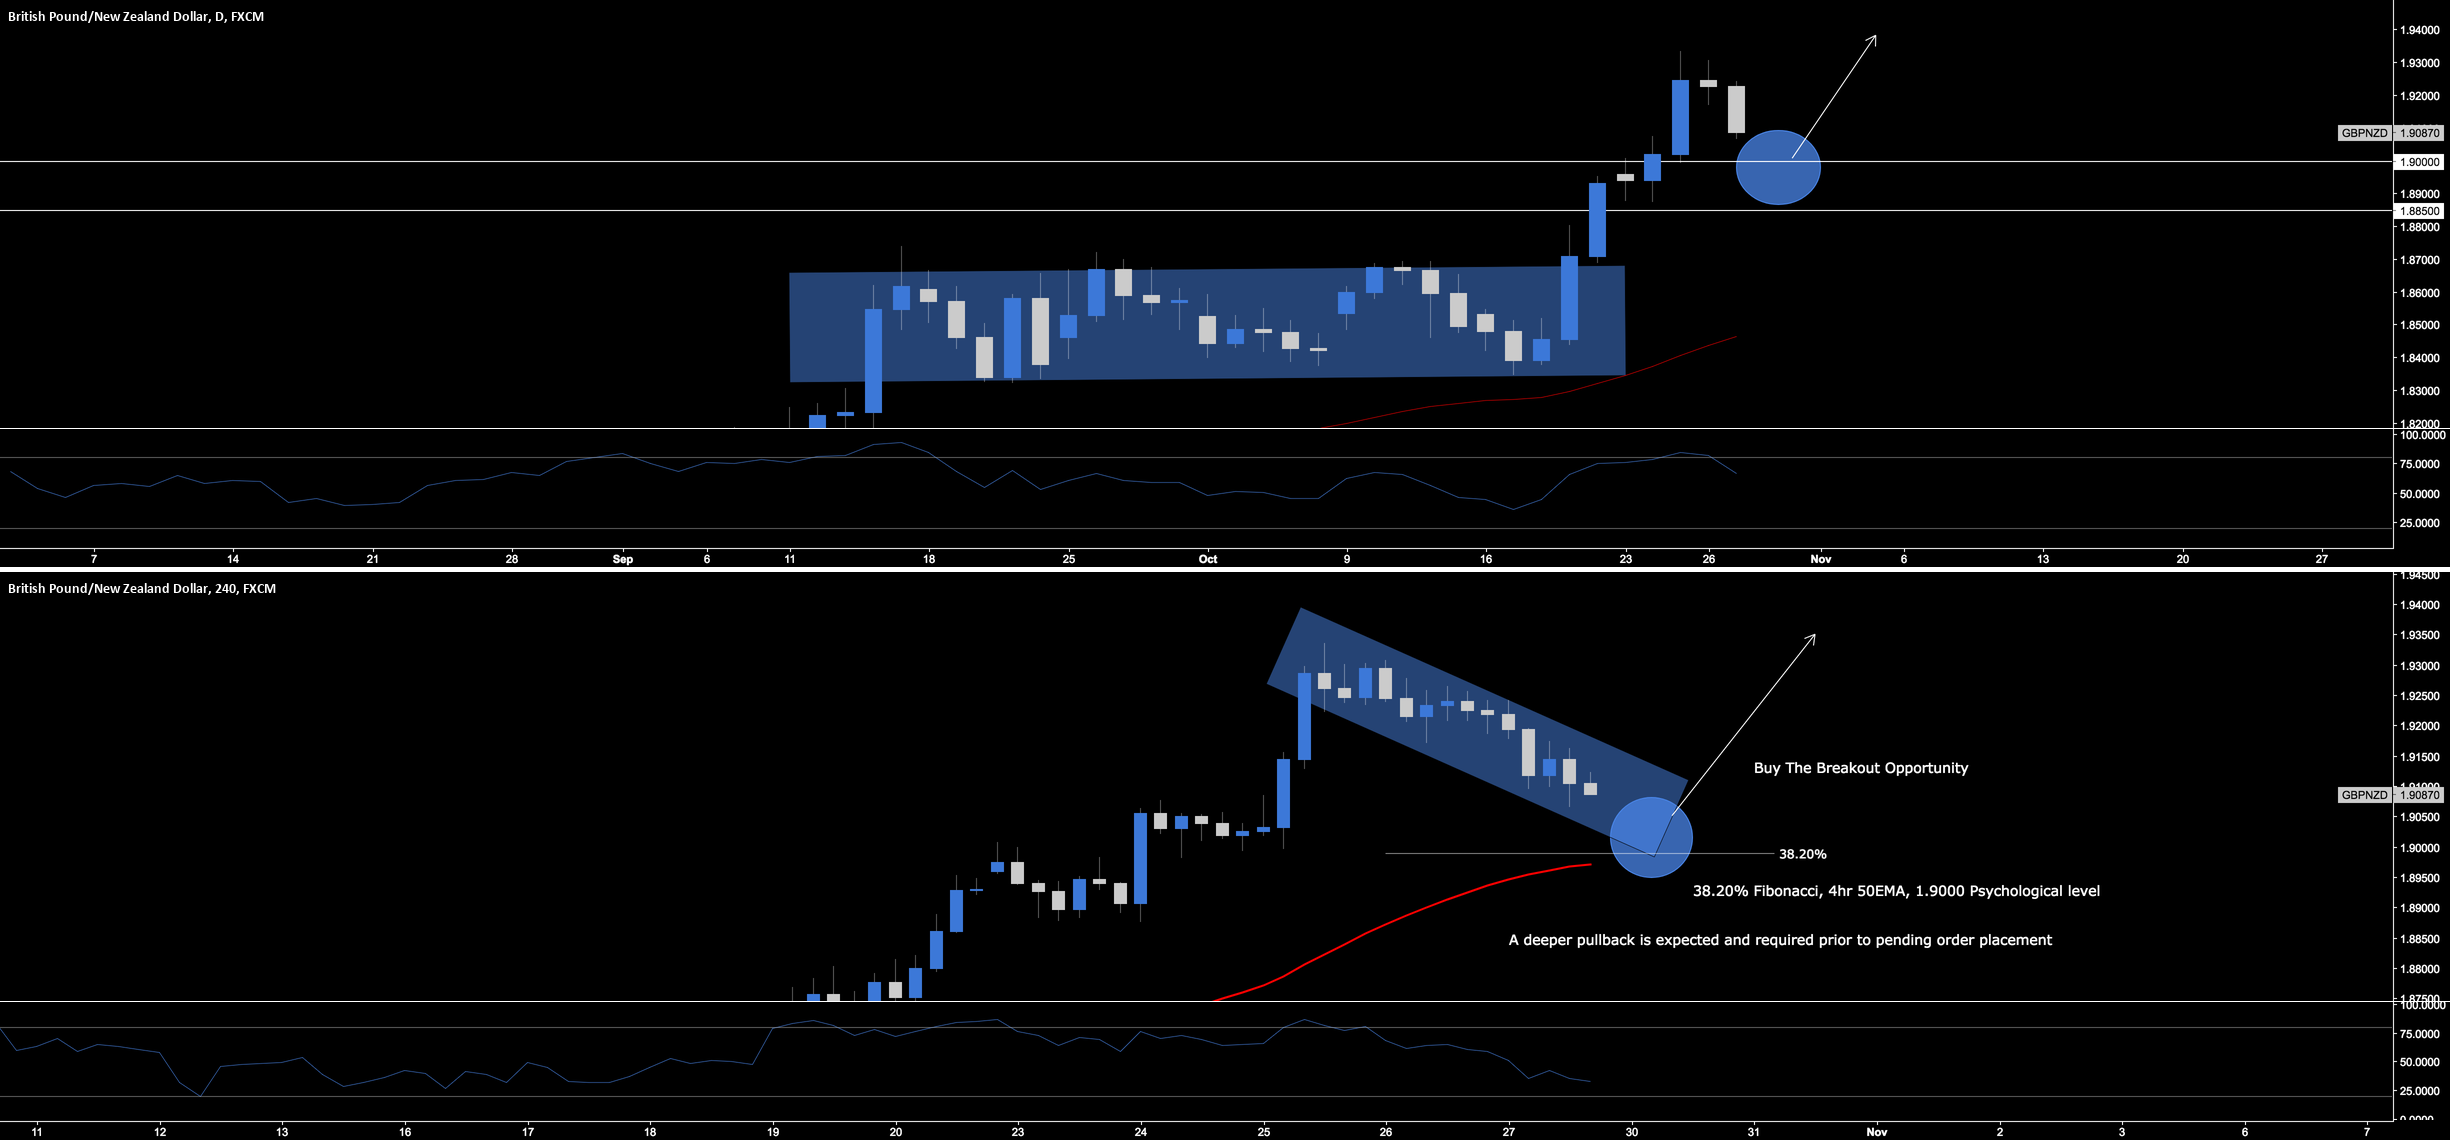 GBP.NZD - Break & Retest Long Opportunity